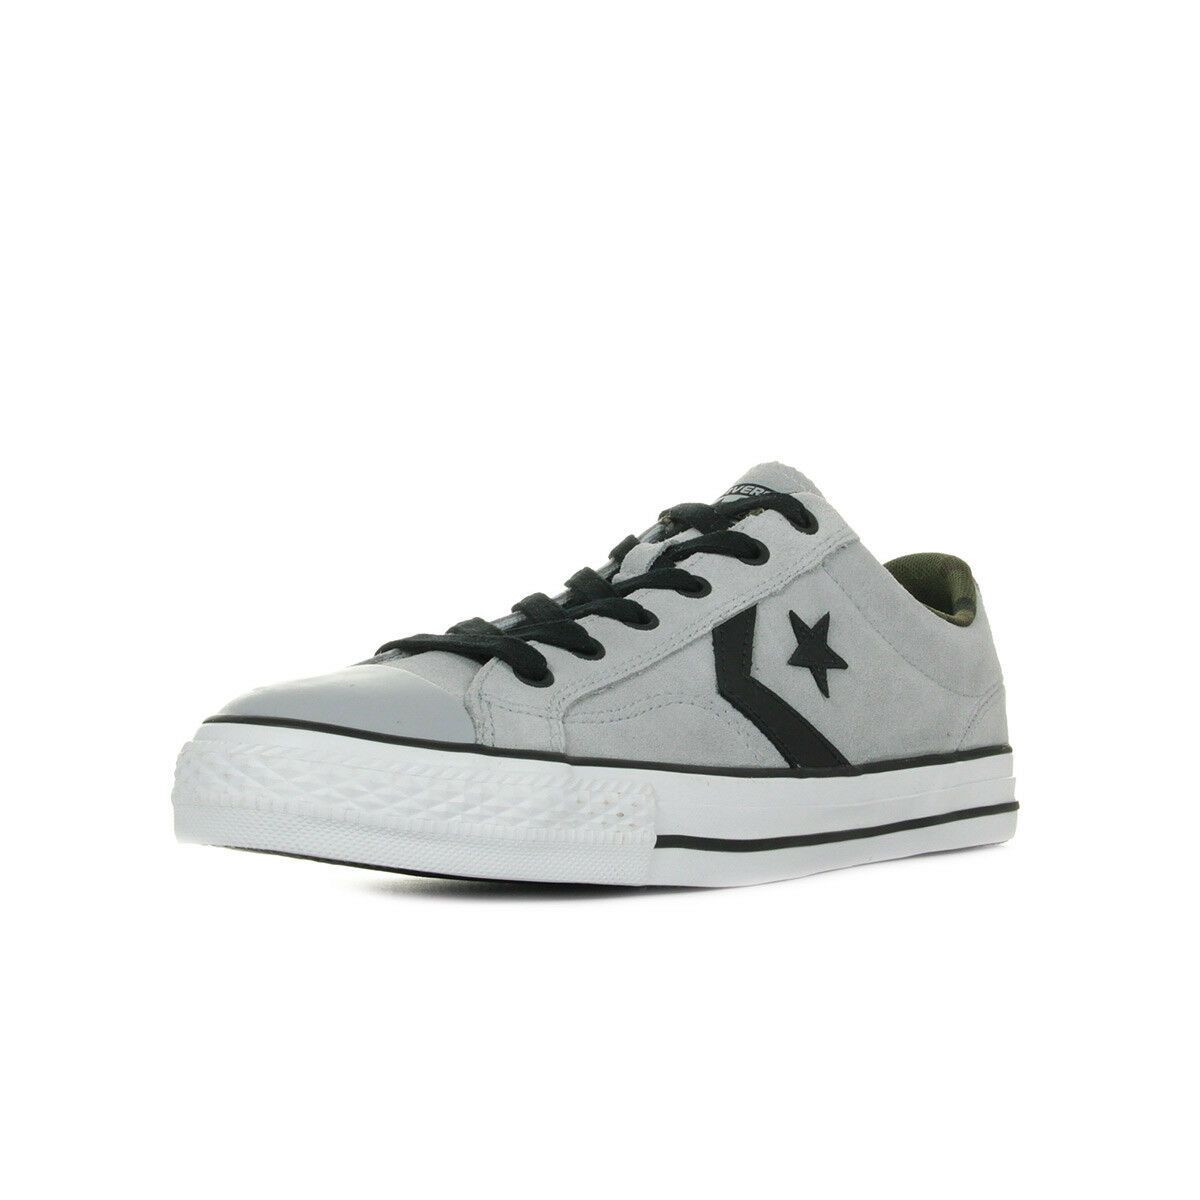 Zapatos Baskets Player Converse Hombre Star Player Baskets OX taille Gris Grise Cuir Lacets 74ea80